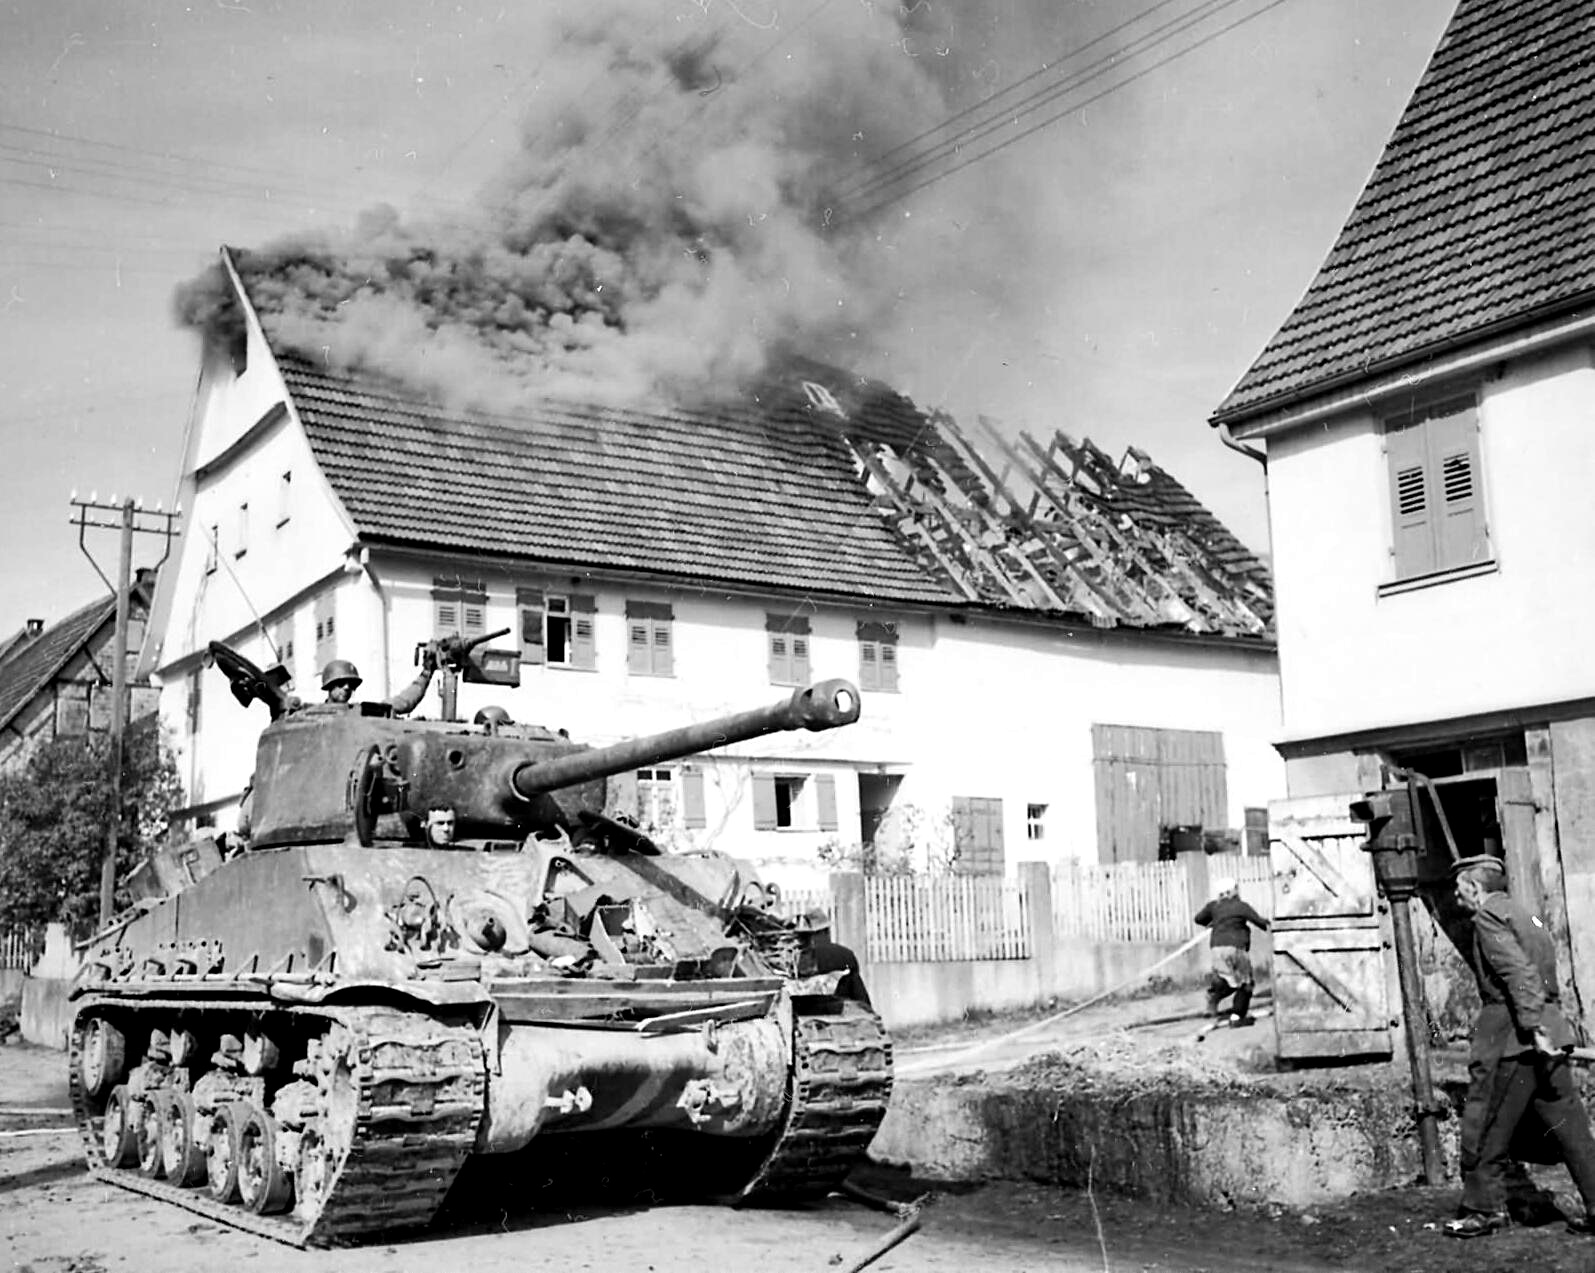 M-4A3 76.2-MM Sherman medium tank from the 21st Tank Battalion, CCA, 10-AD, Rosswalden, Germany on April 20, 1945